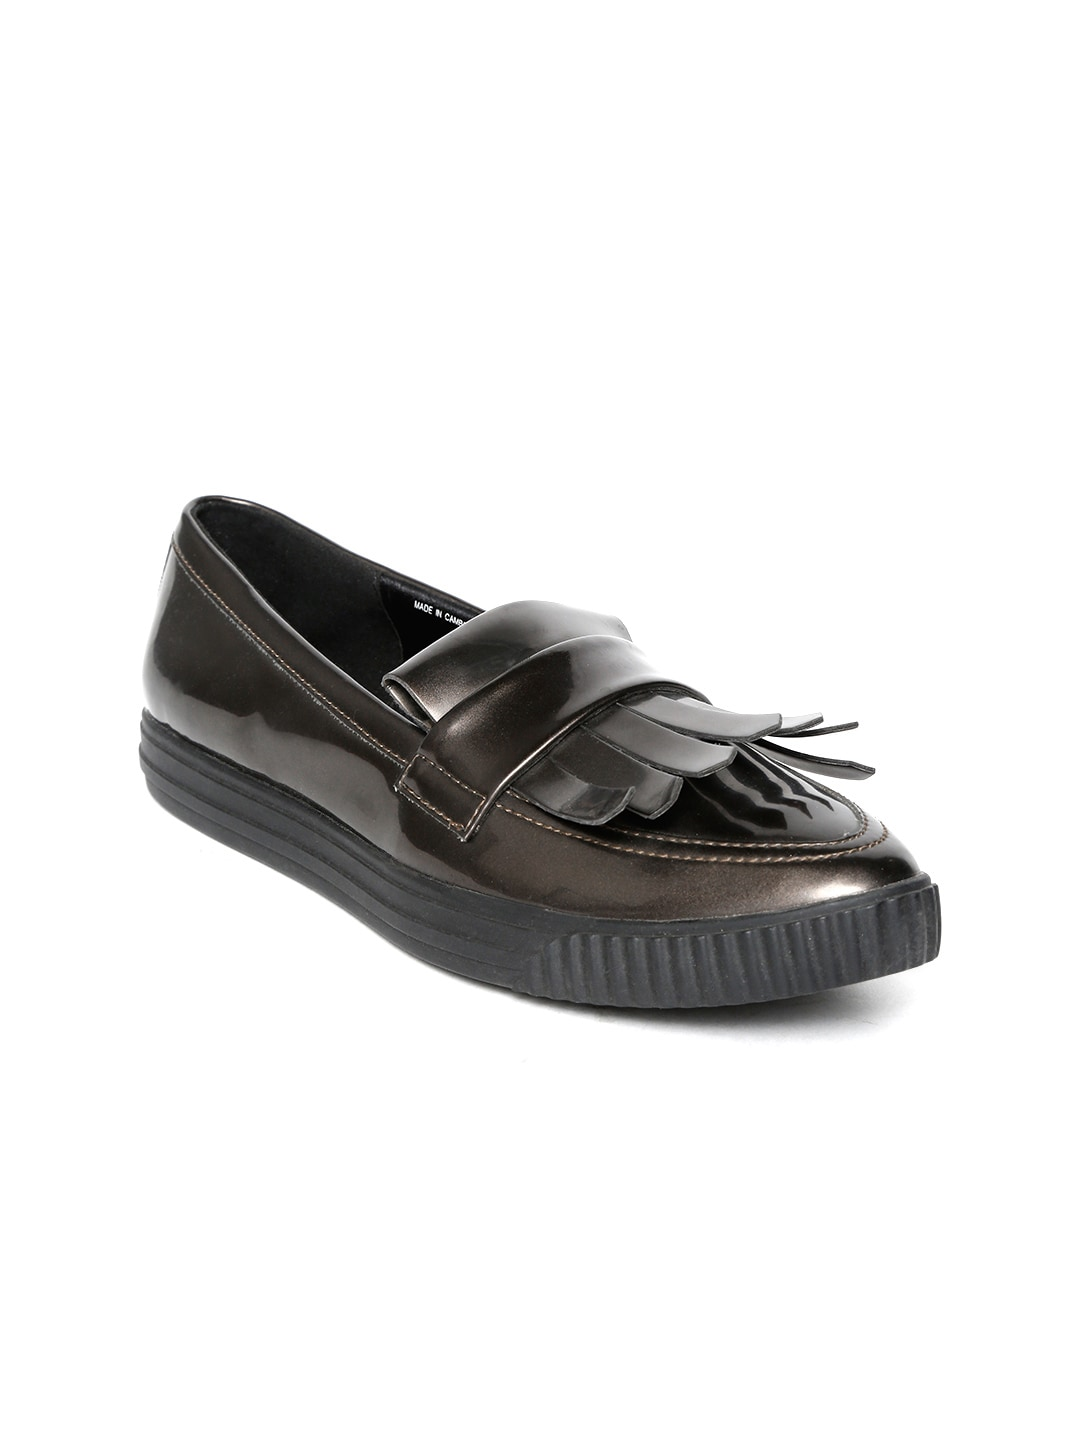 81d4d2e0dff Loafers for Women - Buy Ladies Loafers Online in India